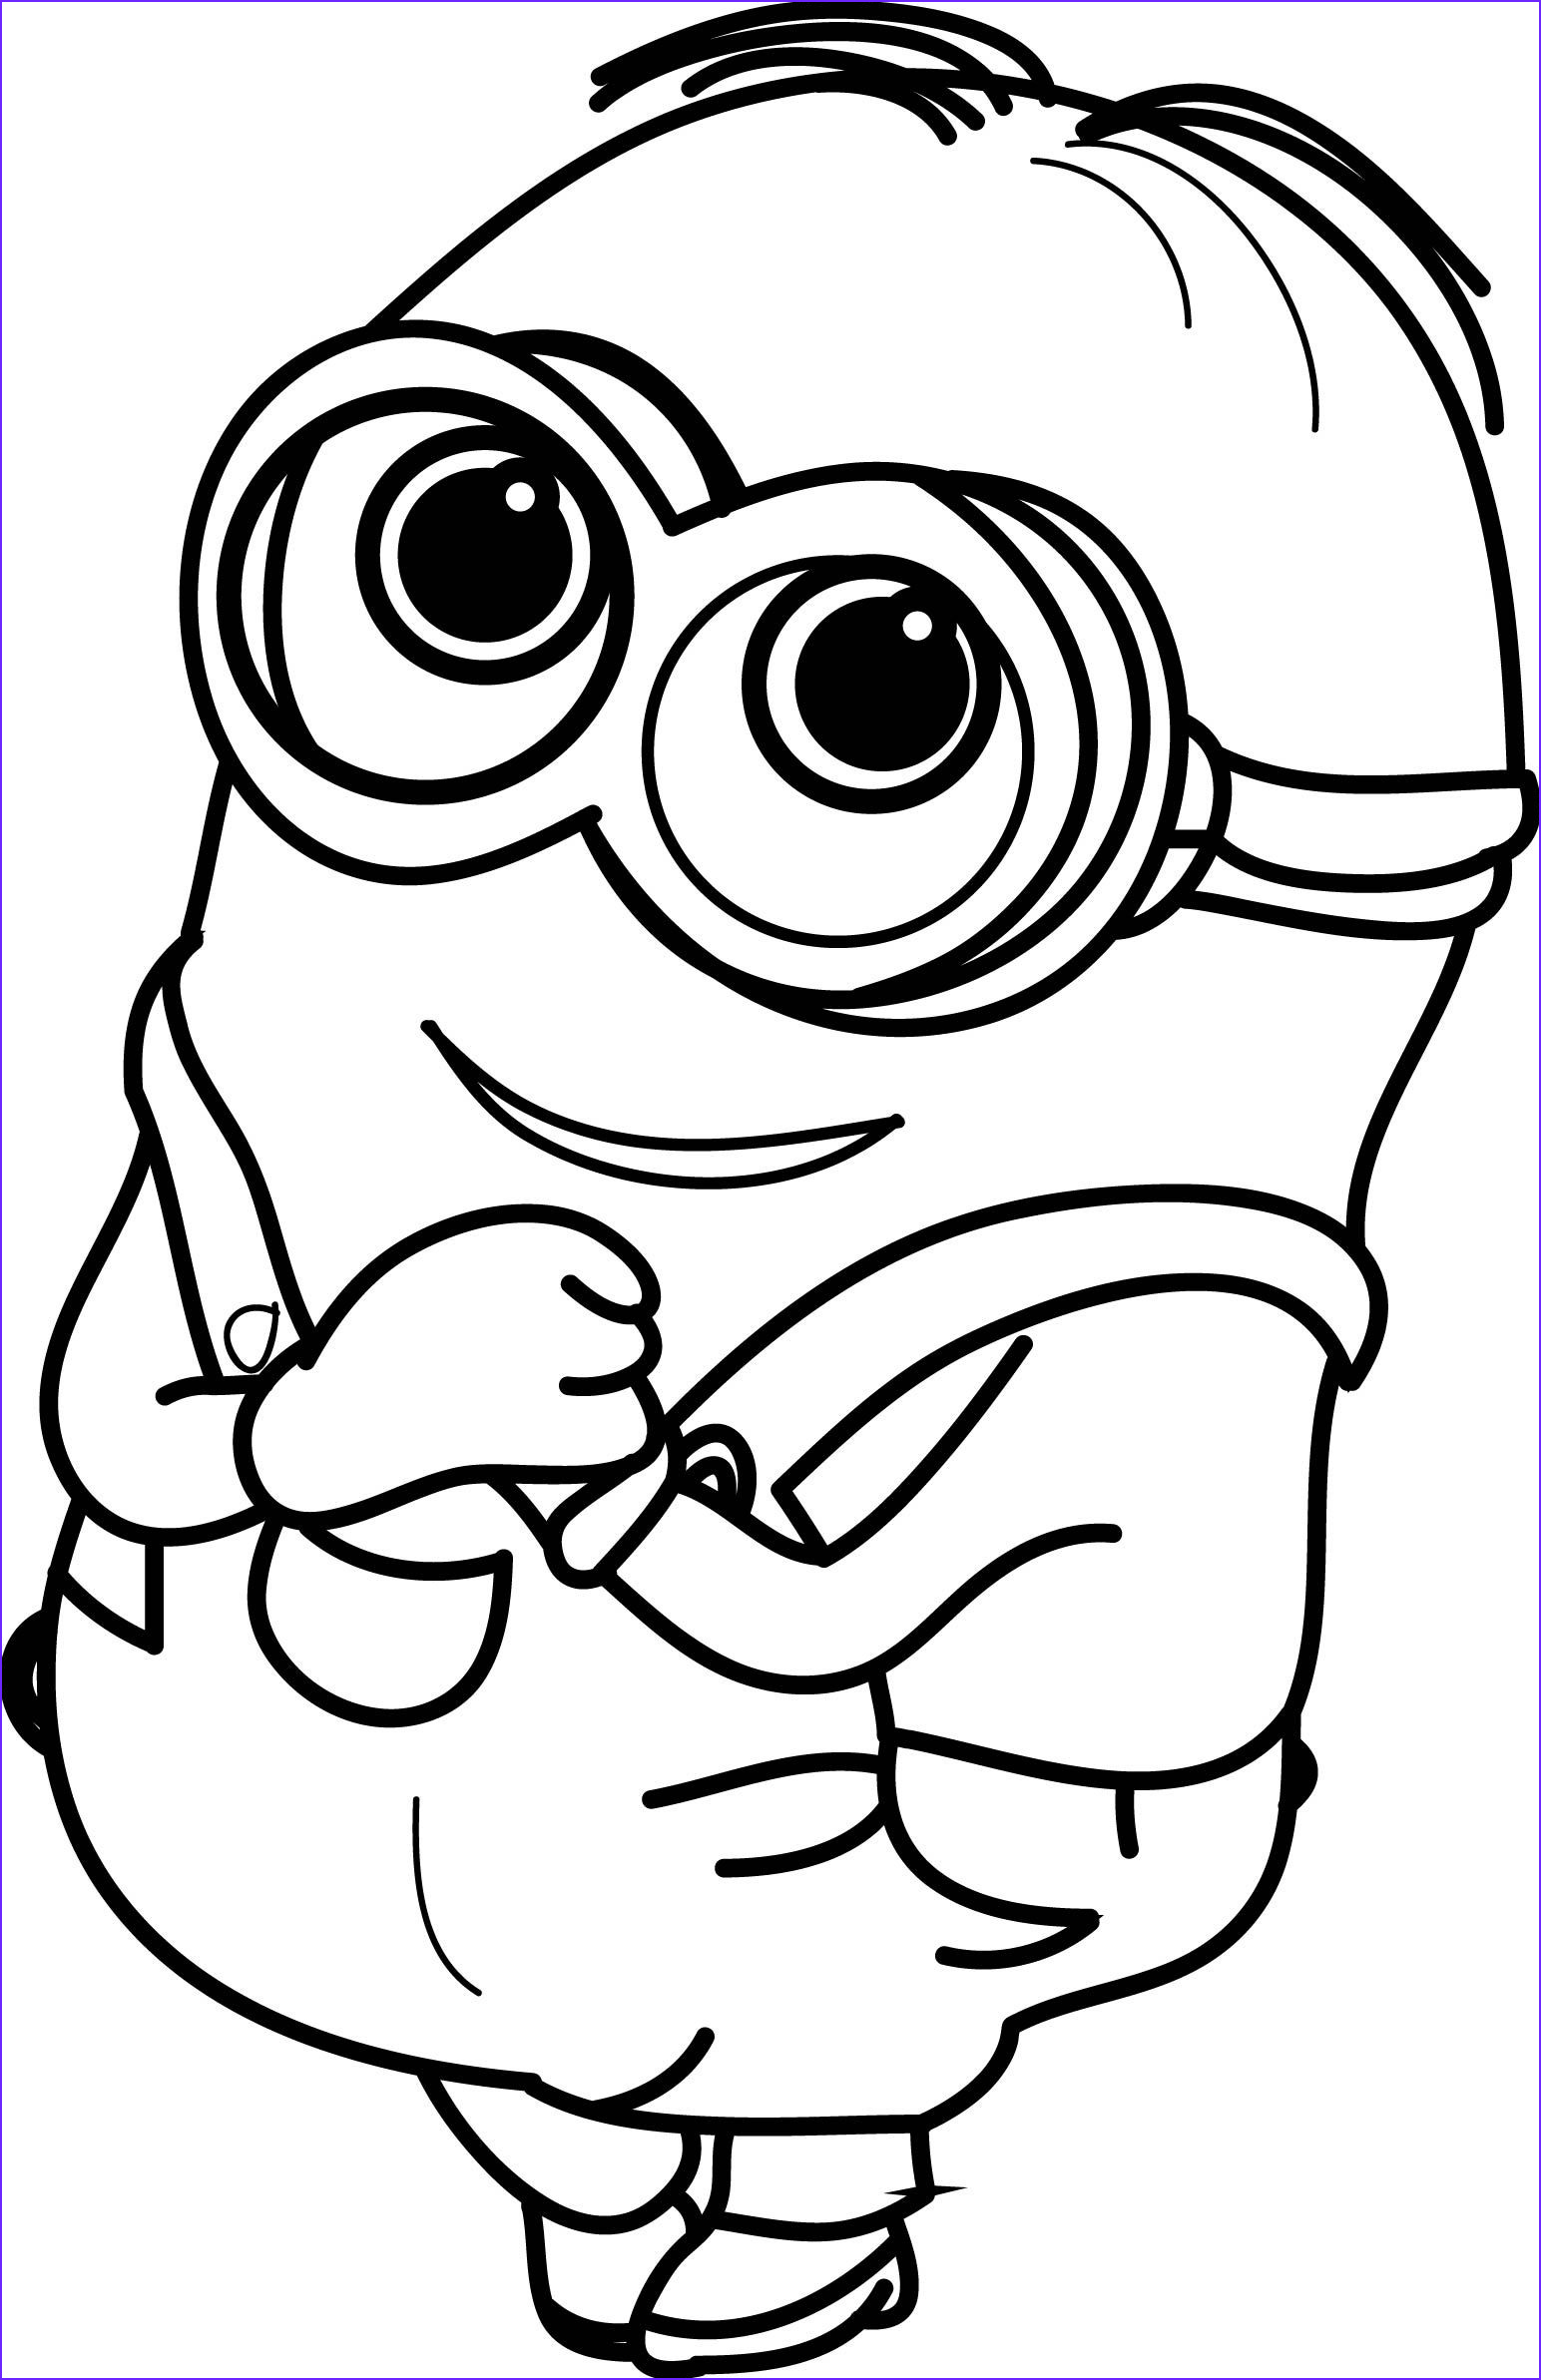 Free Minion Coloring Pages Inspirational Stock Minion Very Cute Coloring Page Minions